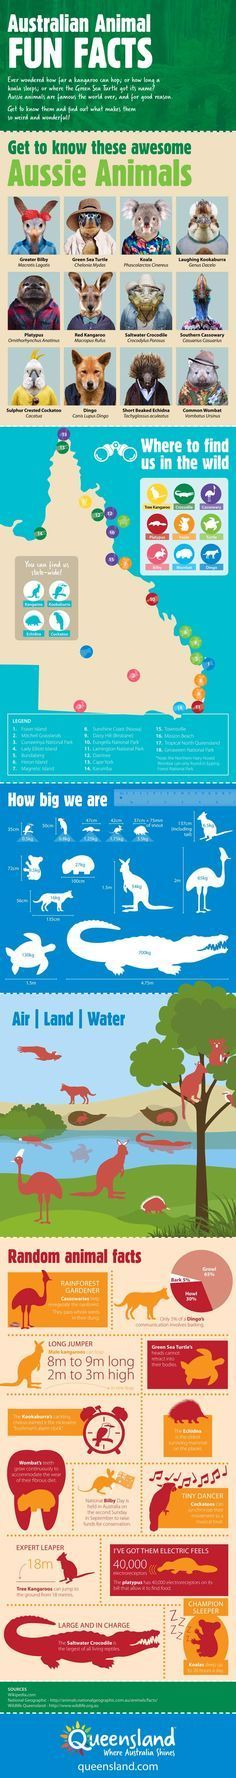 Australian Animal Facts Infographic